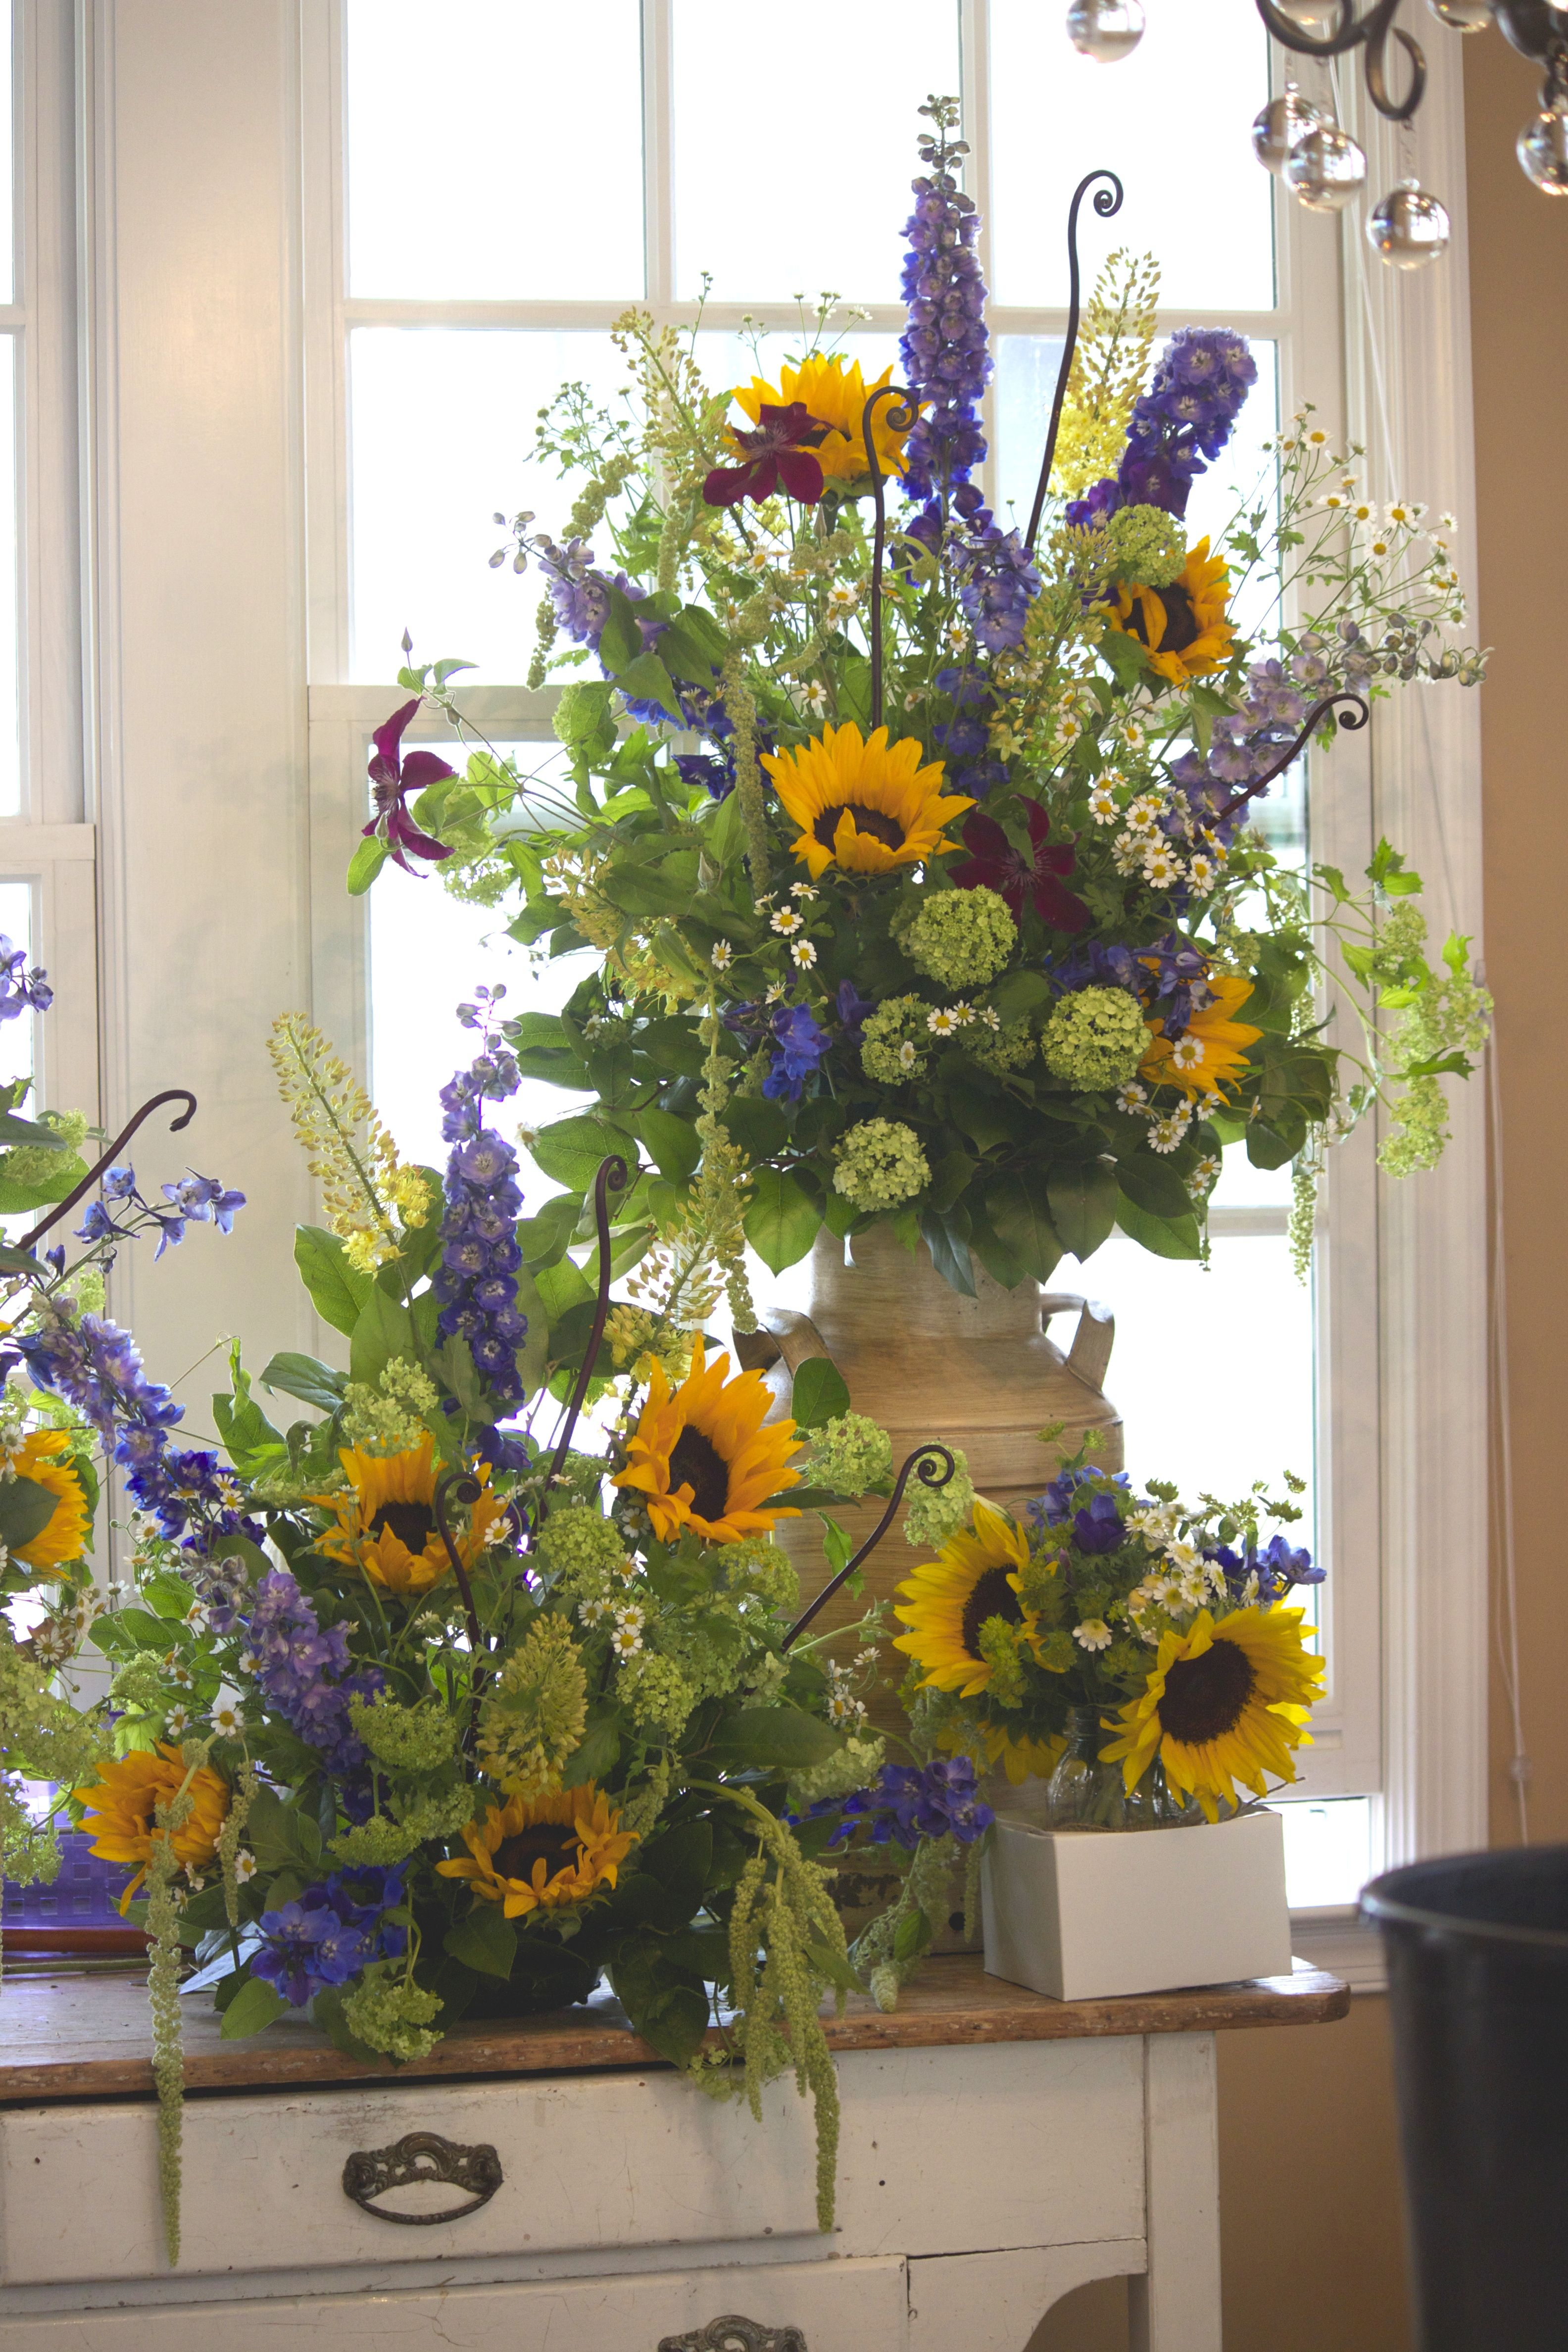 An old milk jug and low arrangement of sunflowers, Queen